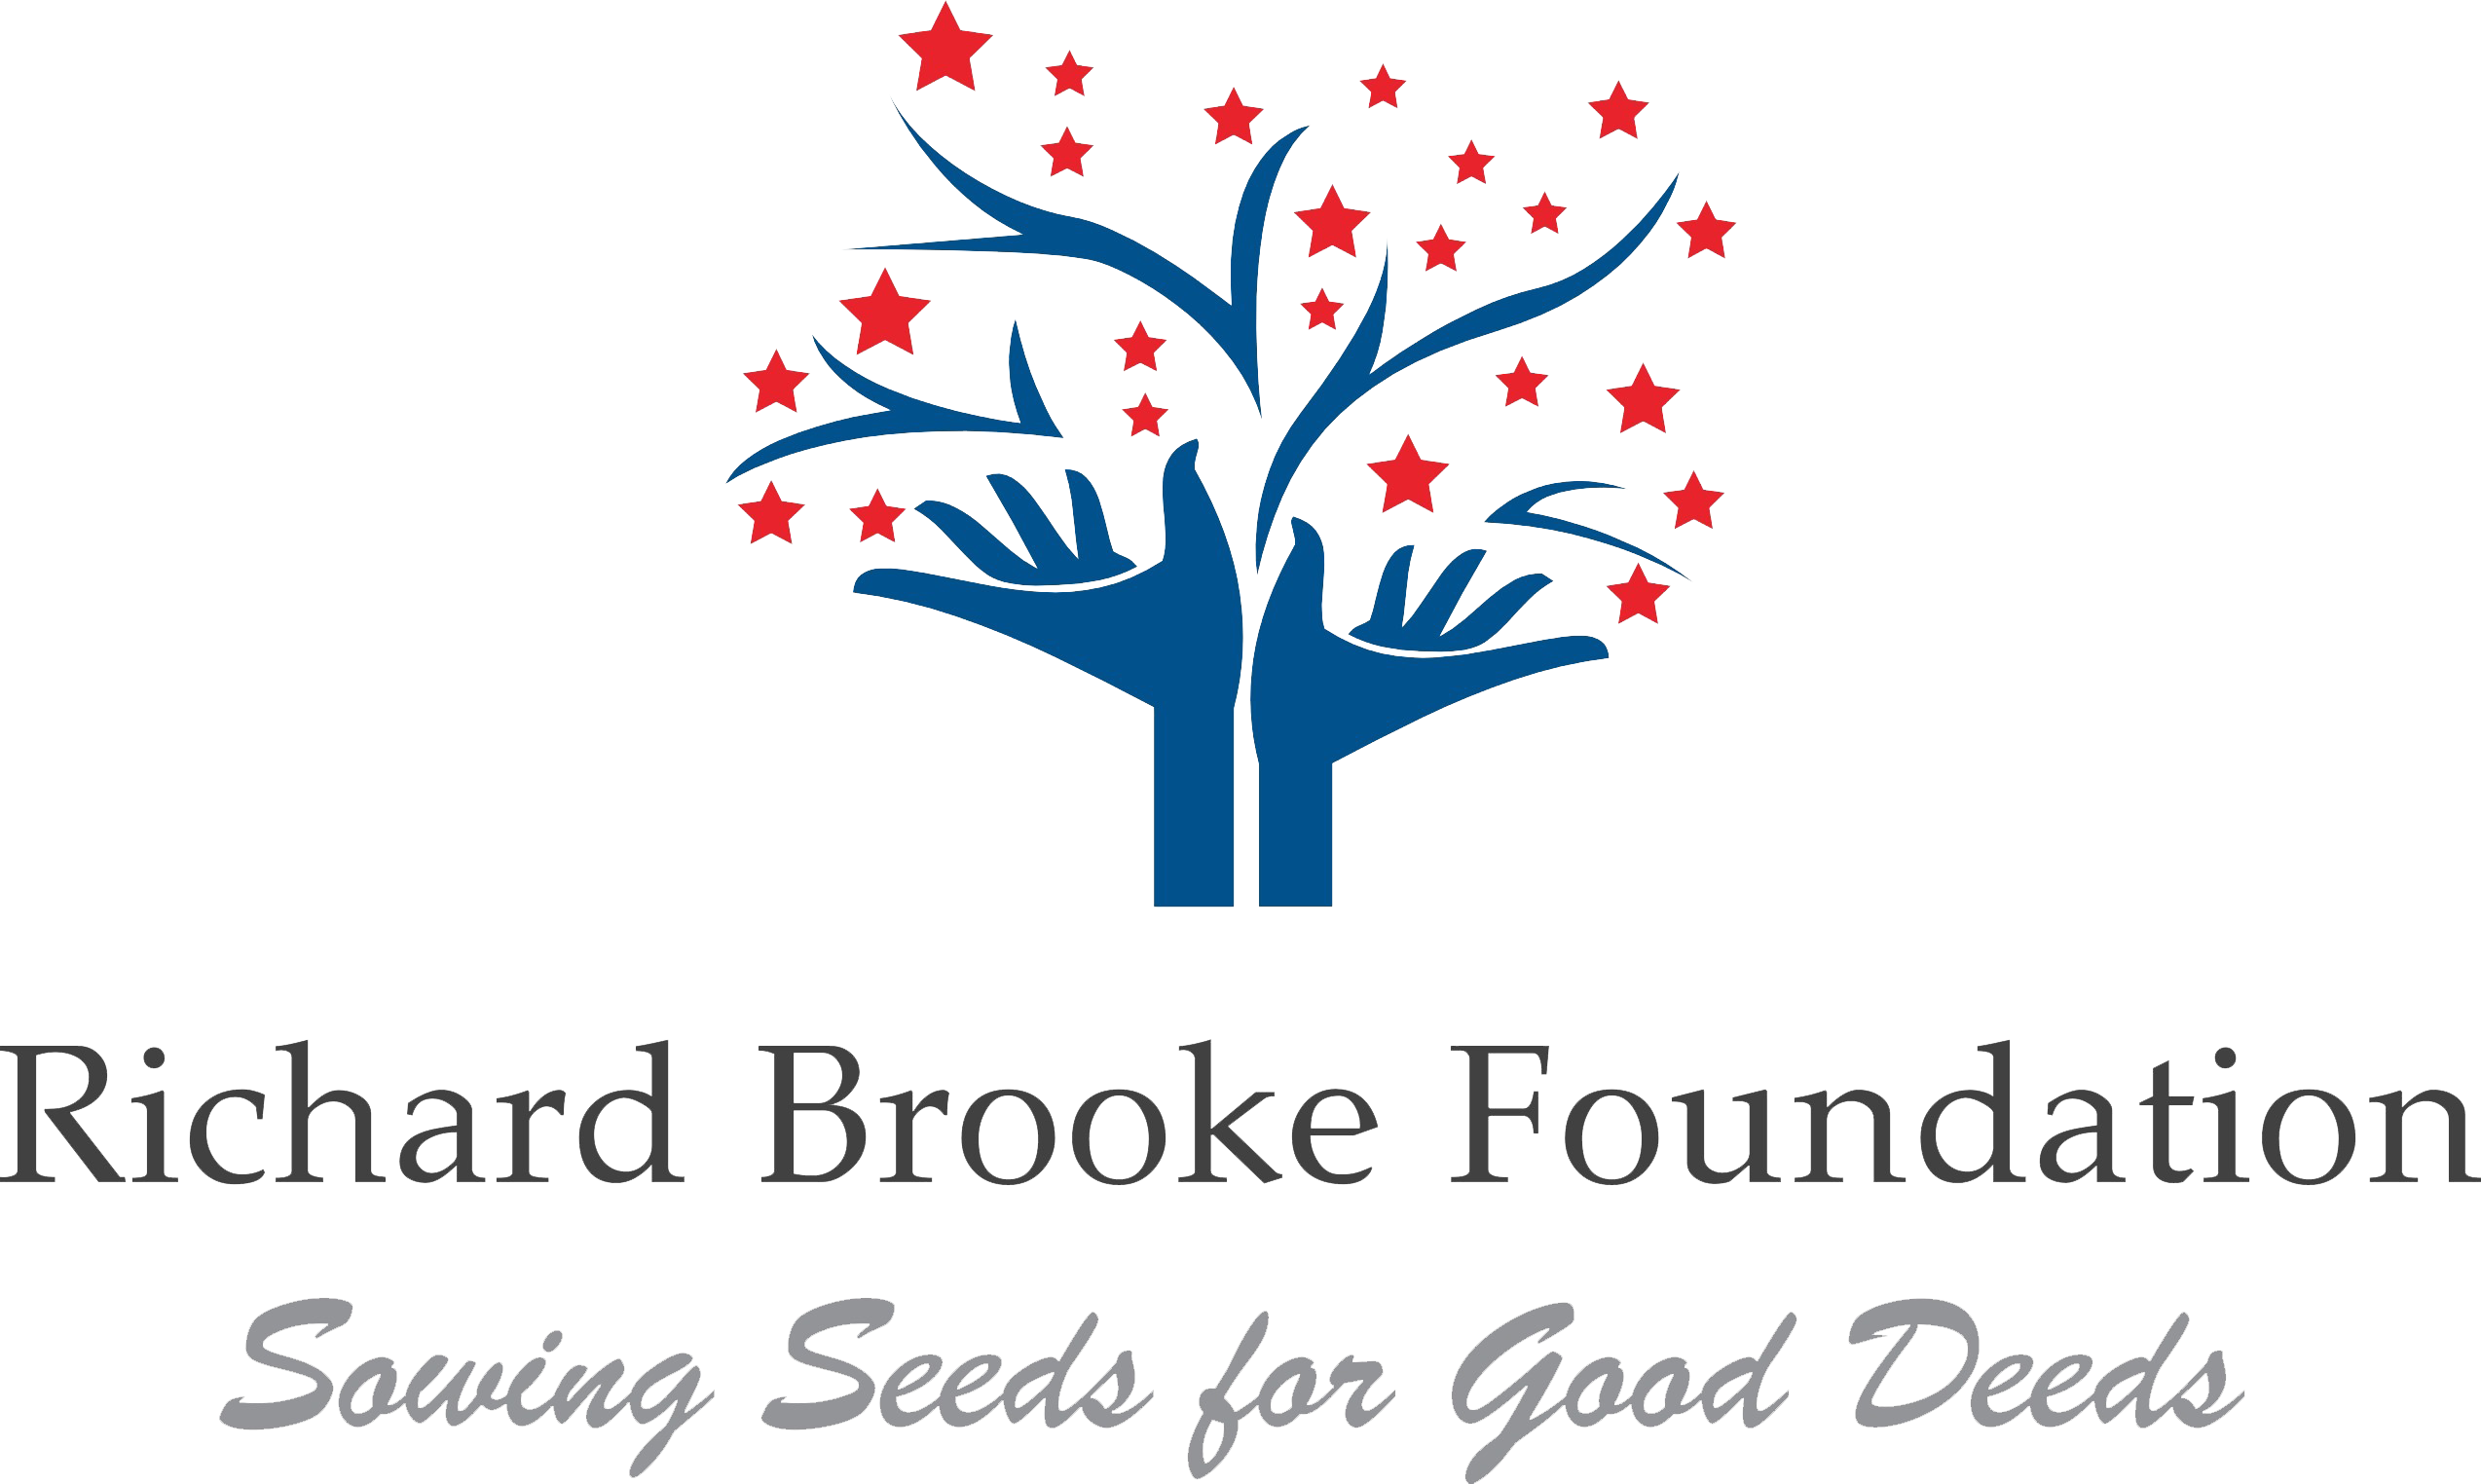 Richard Brooke Foundation